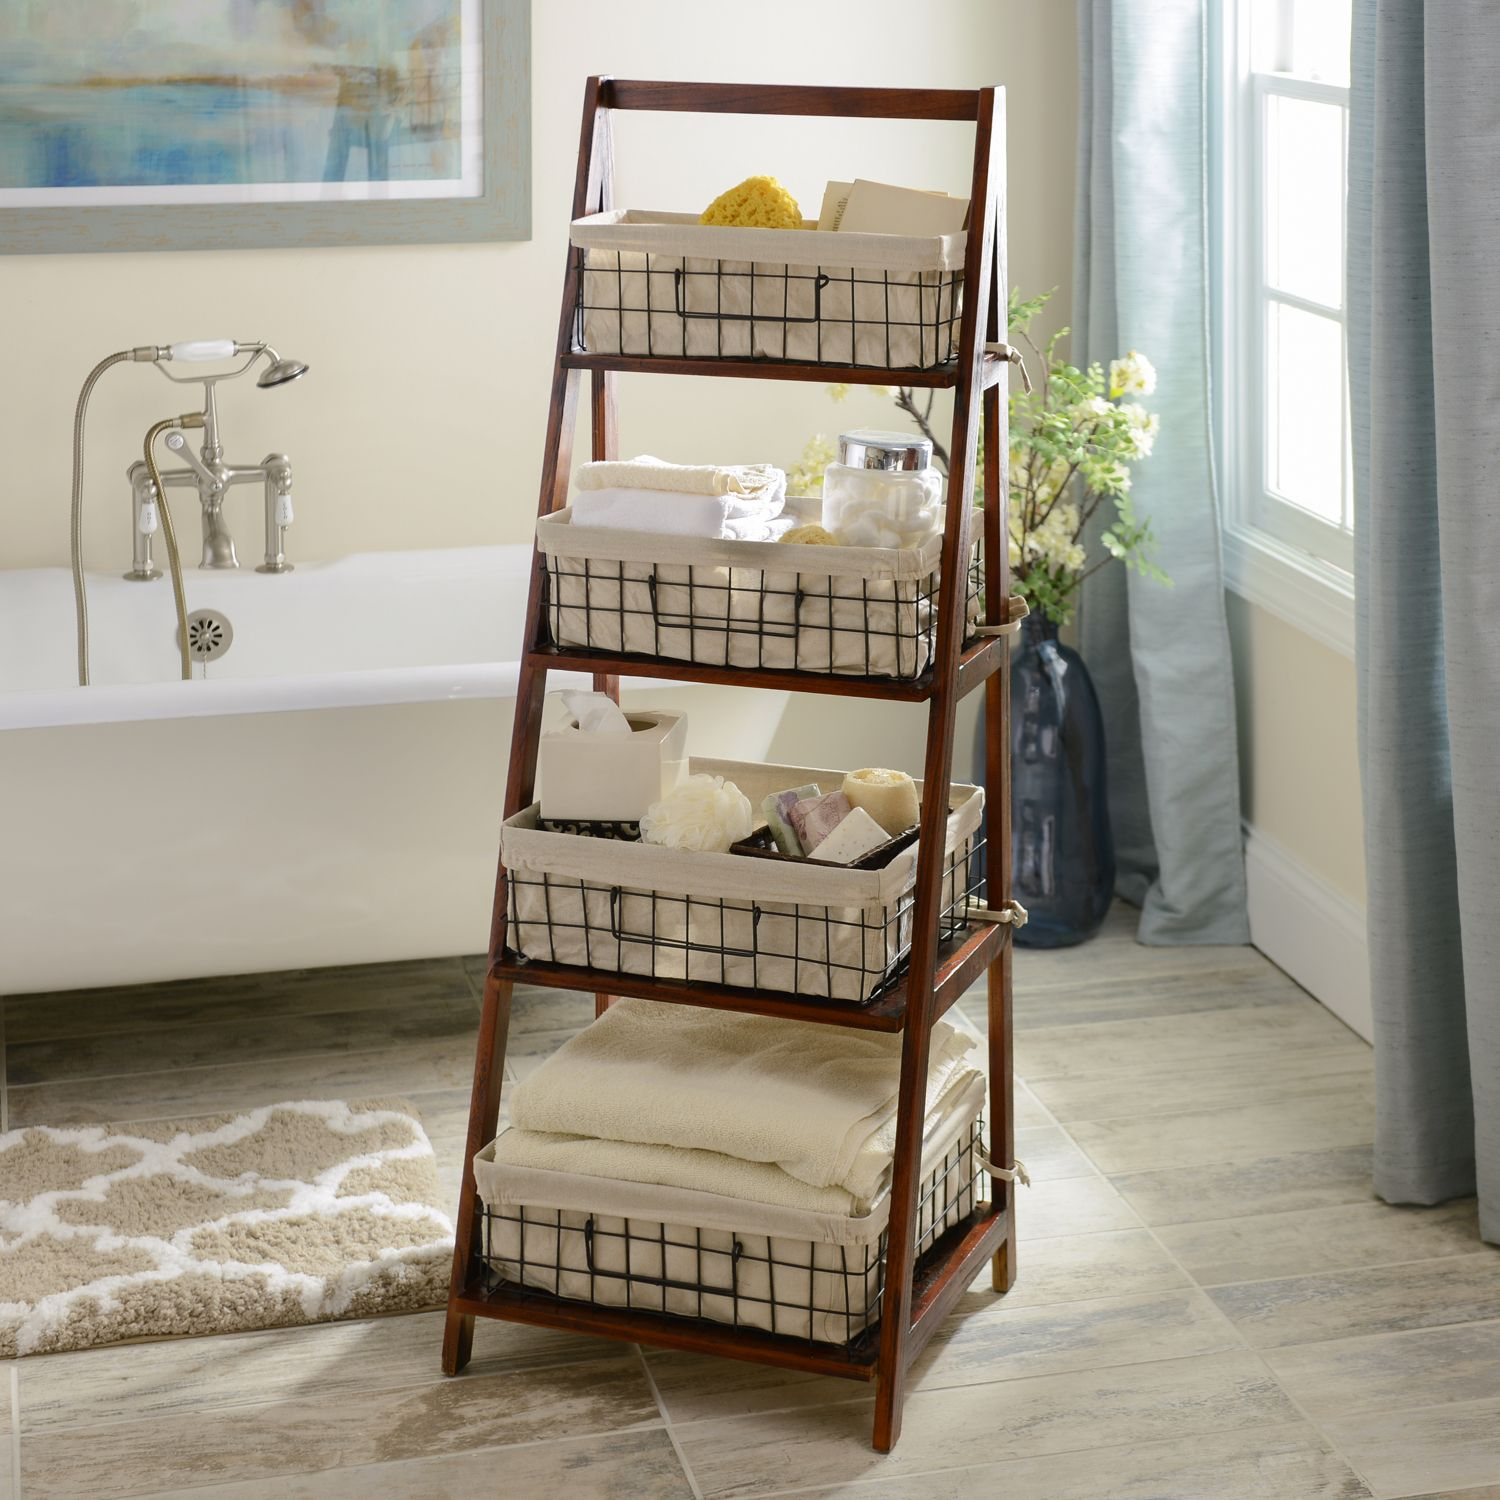 Transform Your Bathroom Into A Spa Like Retreat With Our Brown Storage Basket Wooden Ladder Bathroom Basket Storage Bathroom Storage Ladder Wooden Ladder Shelf